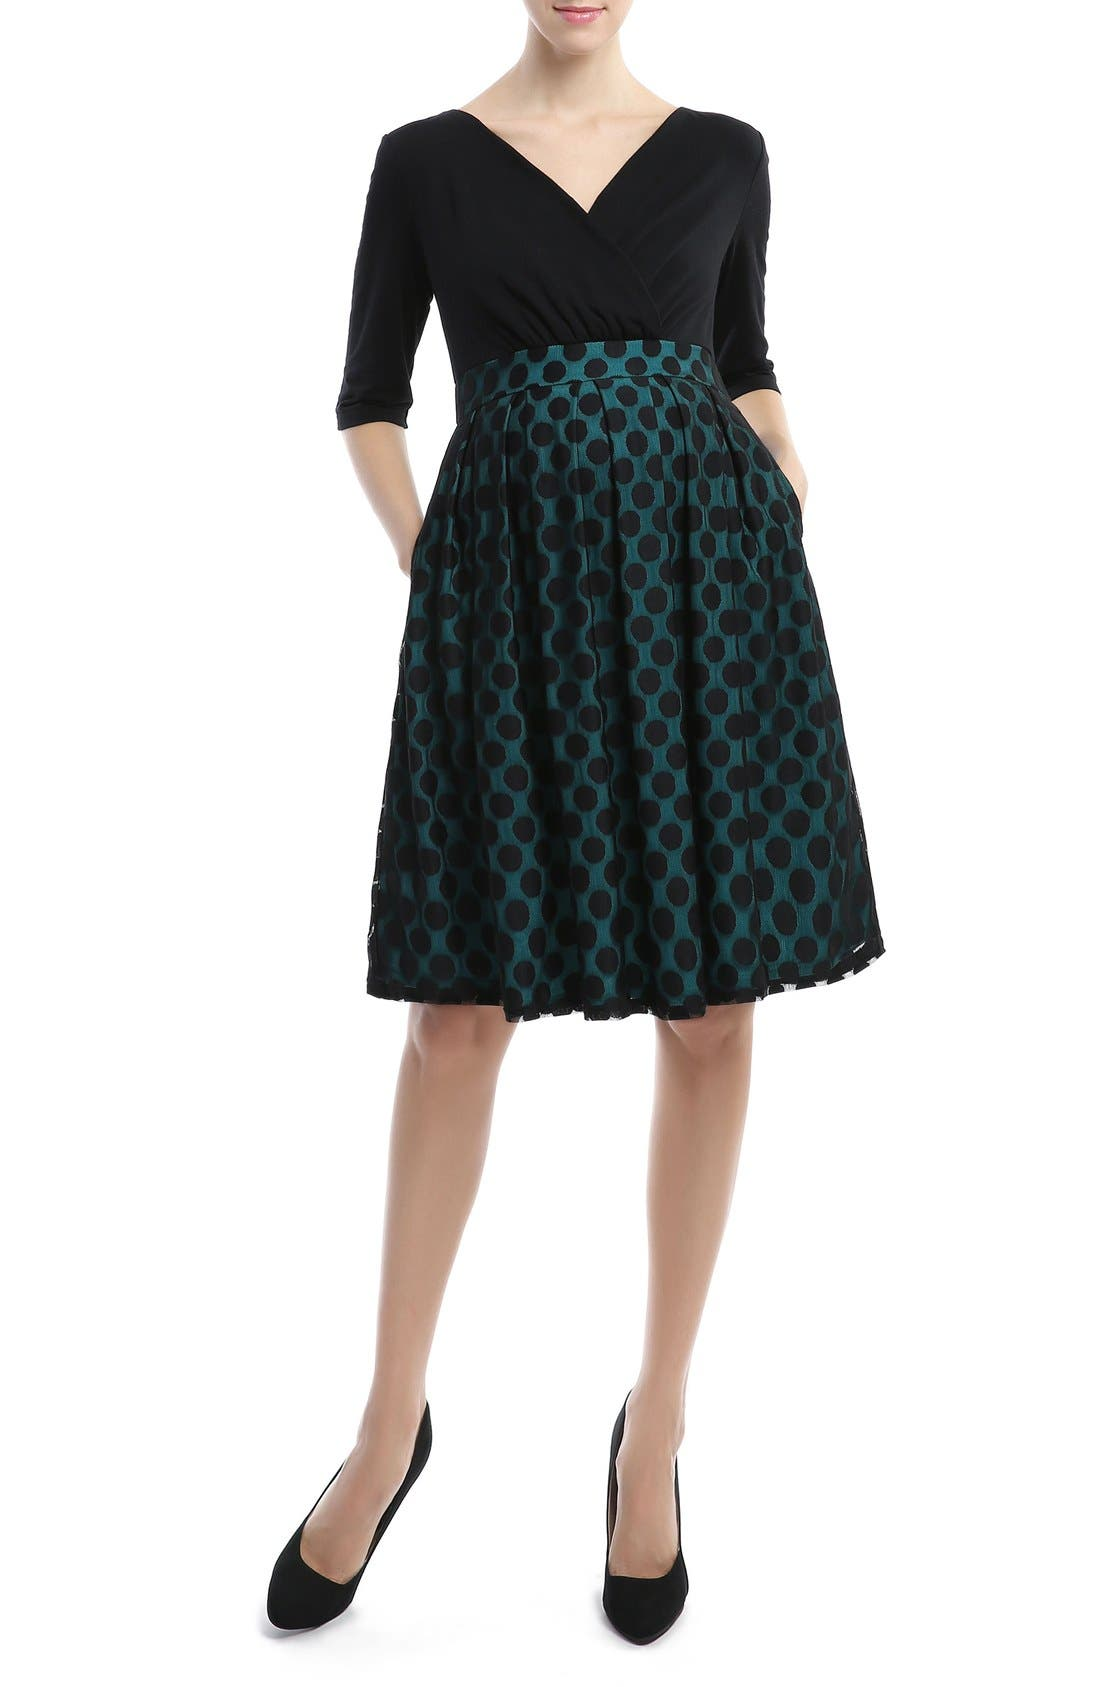 Vintage Maternity Clothes History Womens Kimi And Kai Liliana Polka Dot Lace Maternity Dress Size Small - Bluegreen $138.00 AT vintagedancer.com